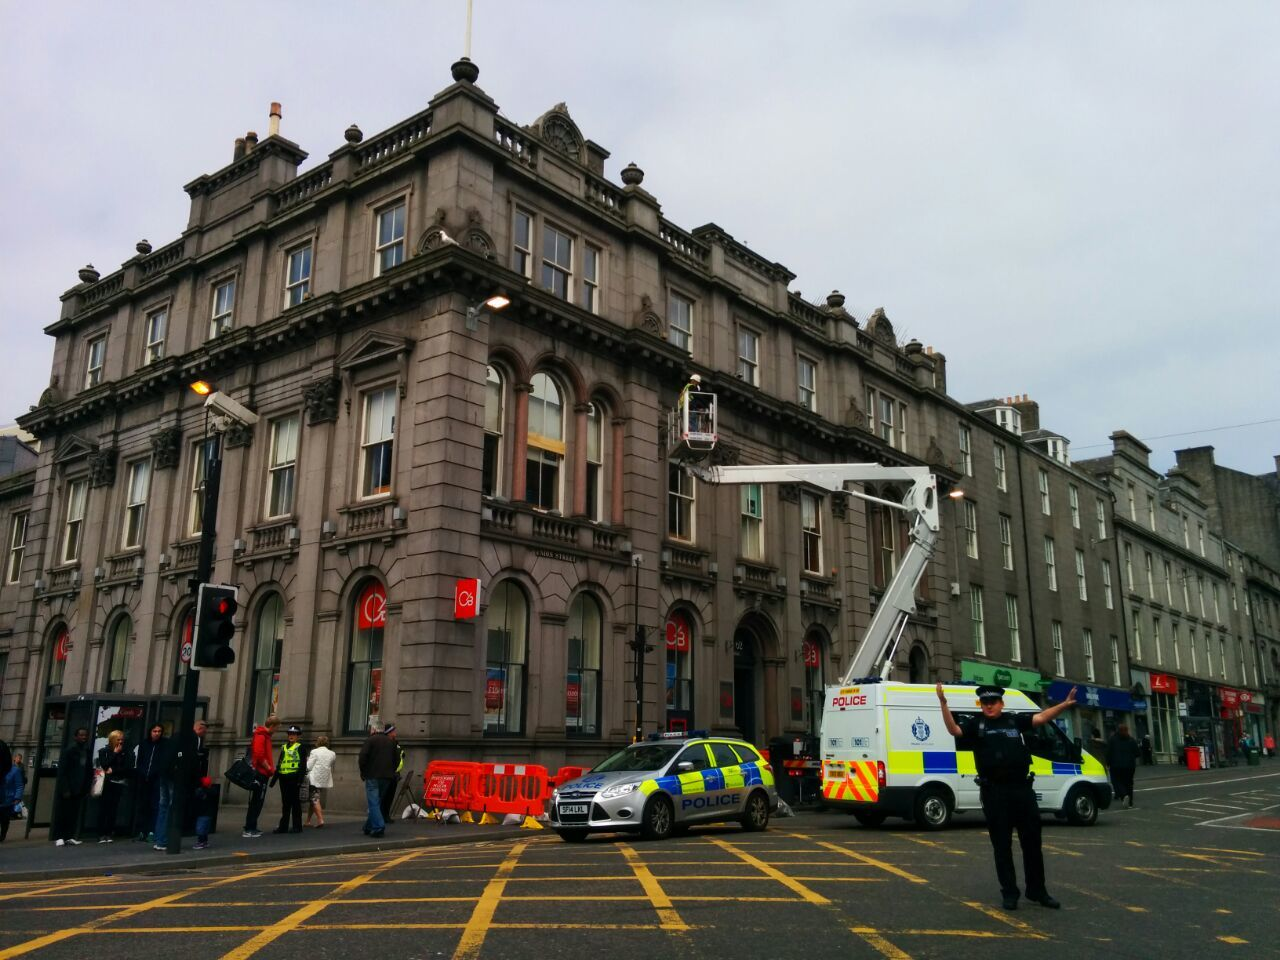 Police officers redirect traffic around the Clydesdale bank as workers check the building.